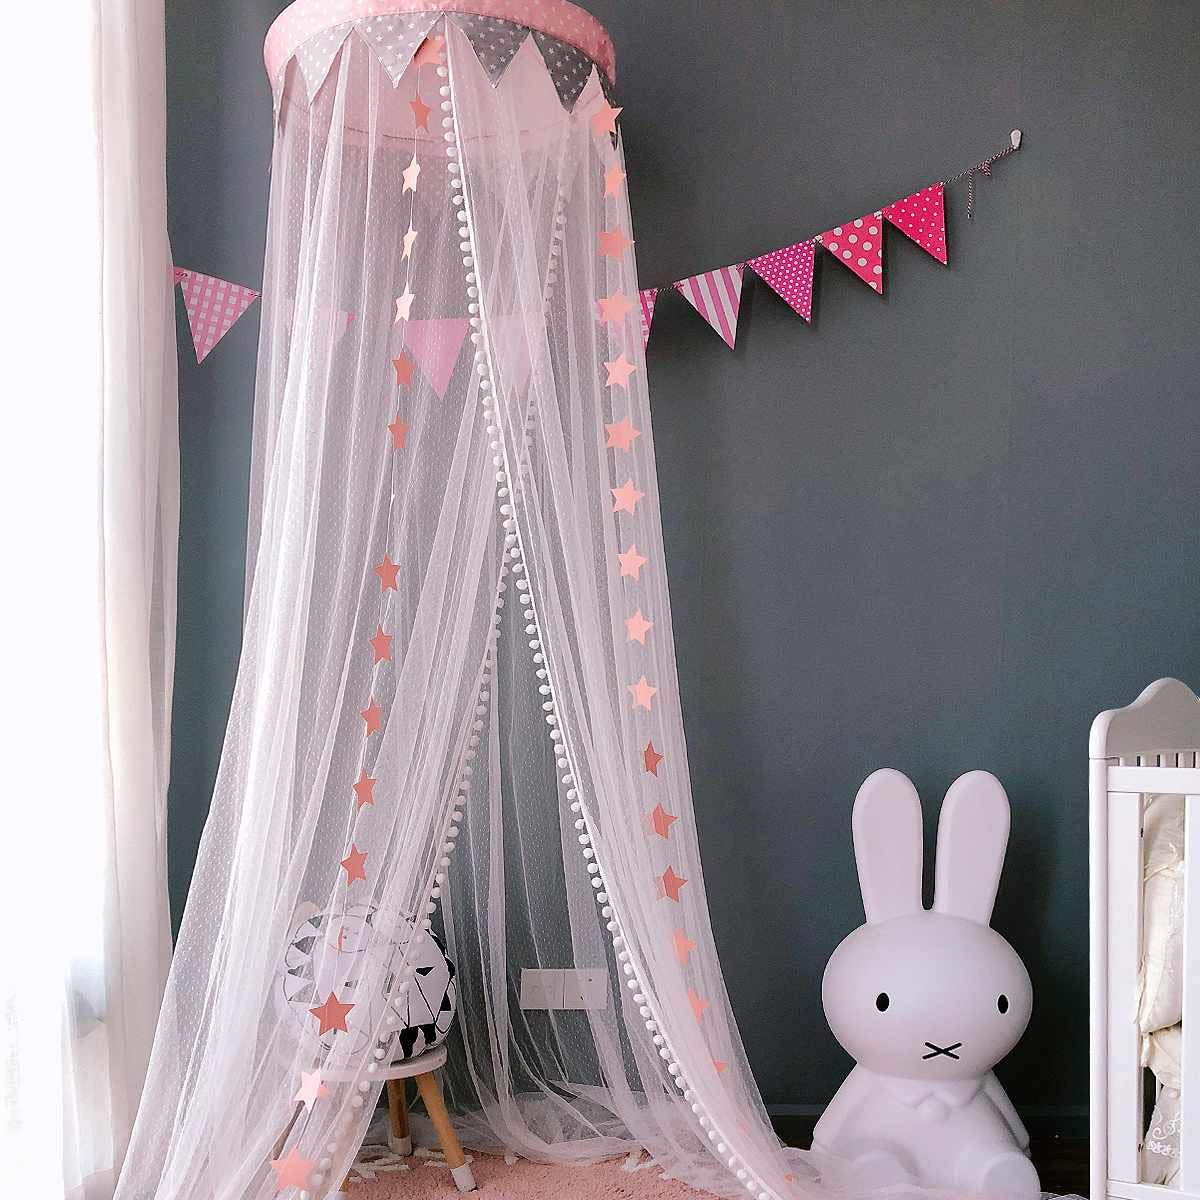 Dix-Rainbow Bed Canopy Mosquito Net Baby Crib Kids Twin Full Queen Size Bed, Reading Nook for Girls and Boys, Princess Lace Round Dome Fairy Netting Curtains, Kids Play Tent Castle Games House - Pink by Dix-Rainbow (Image #2)